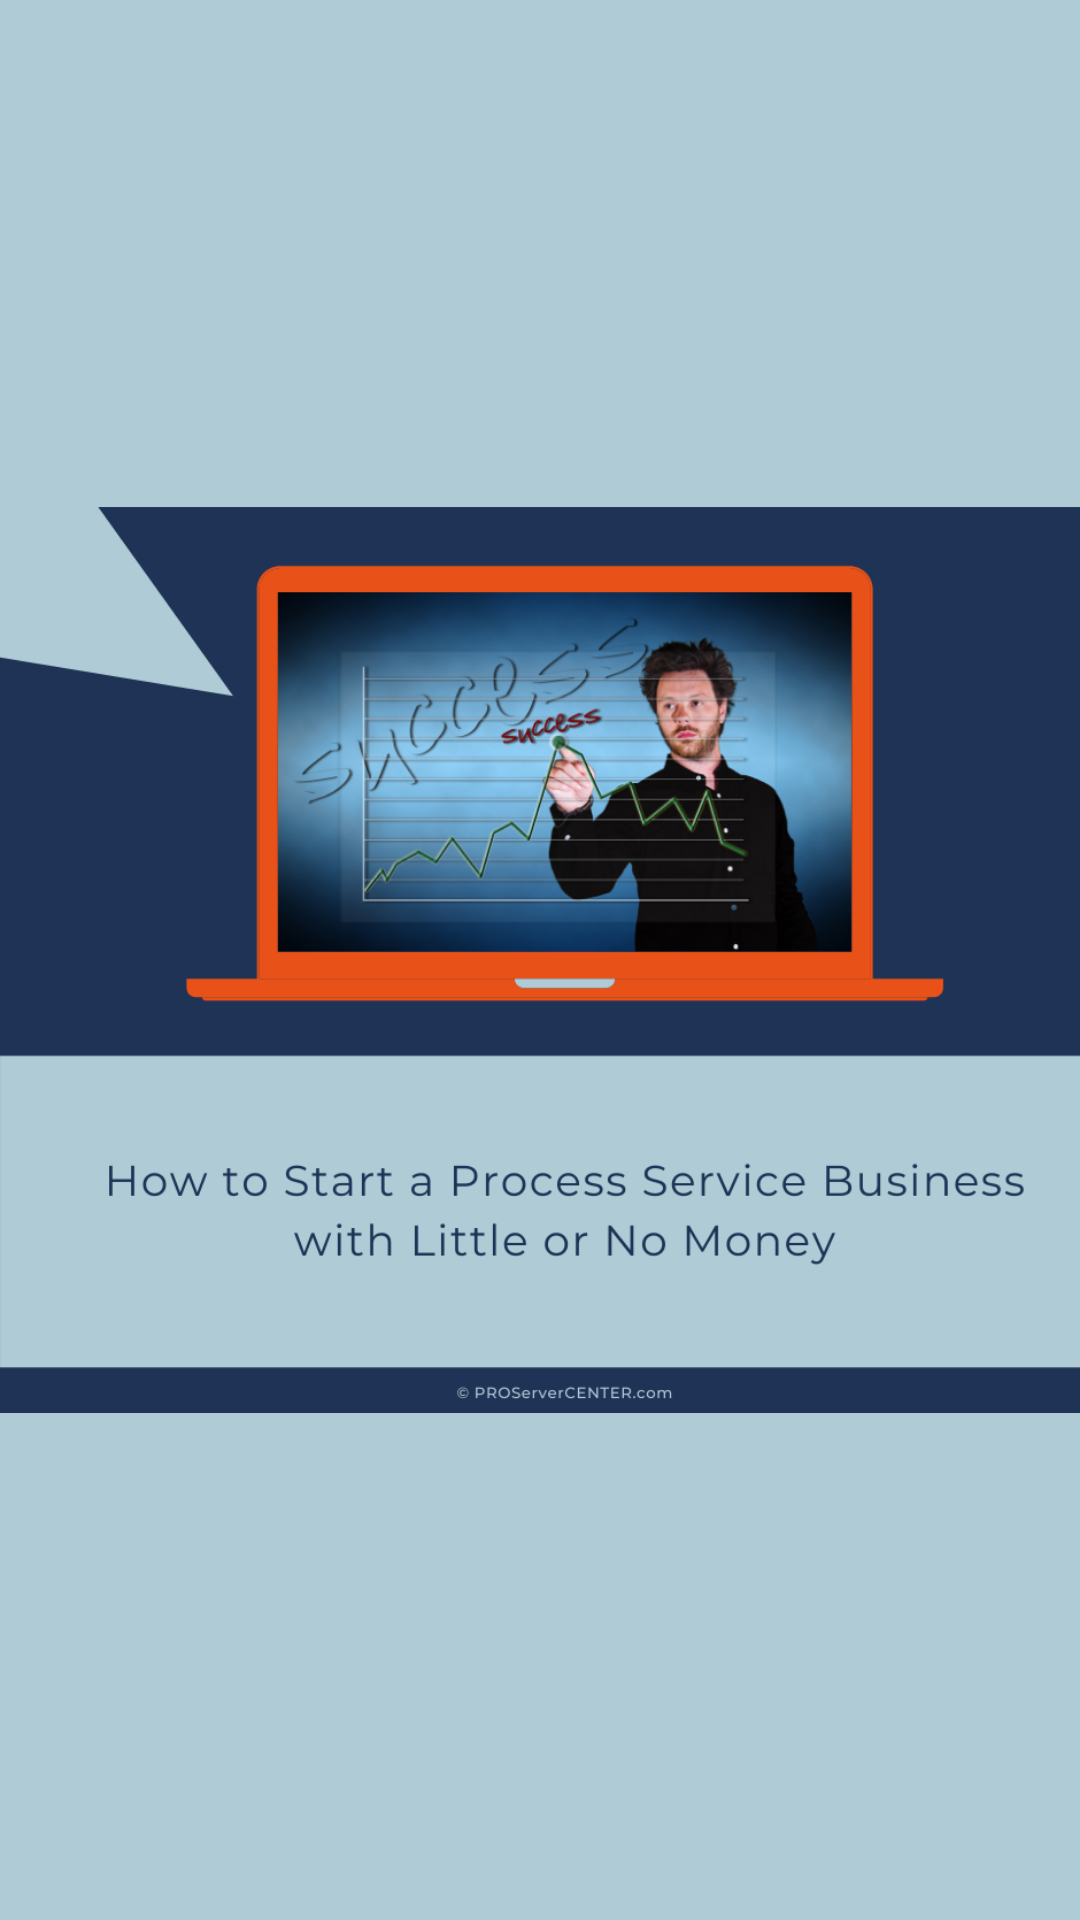 how to start a process service business with little or no money